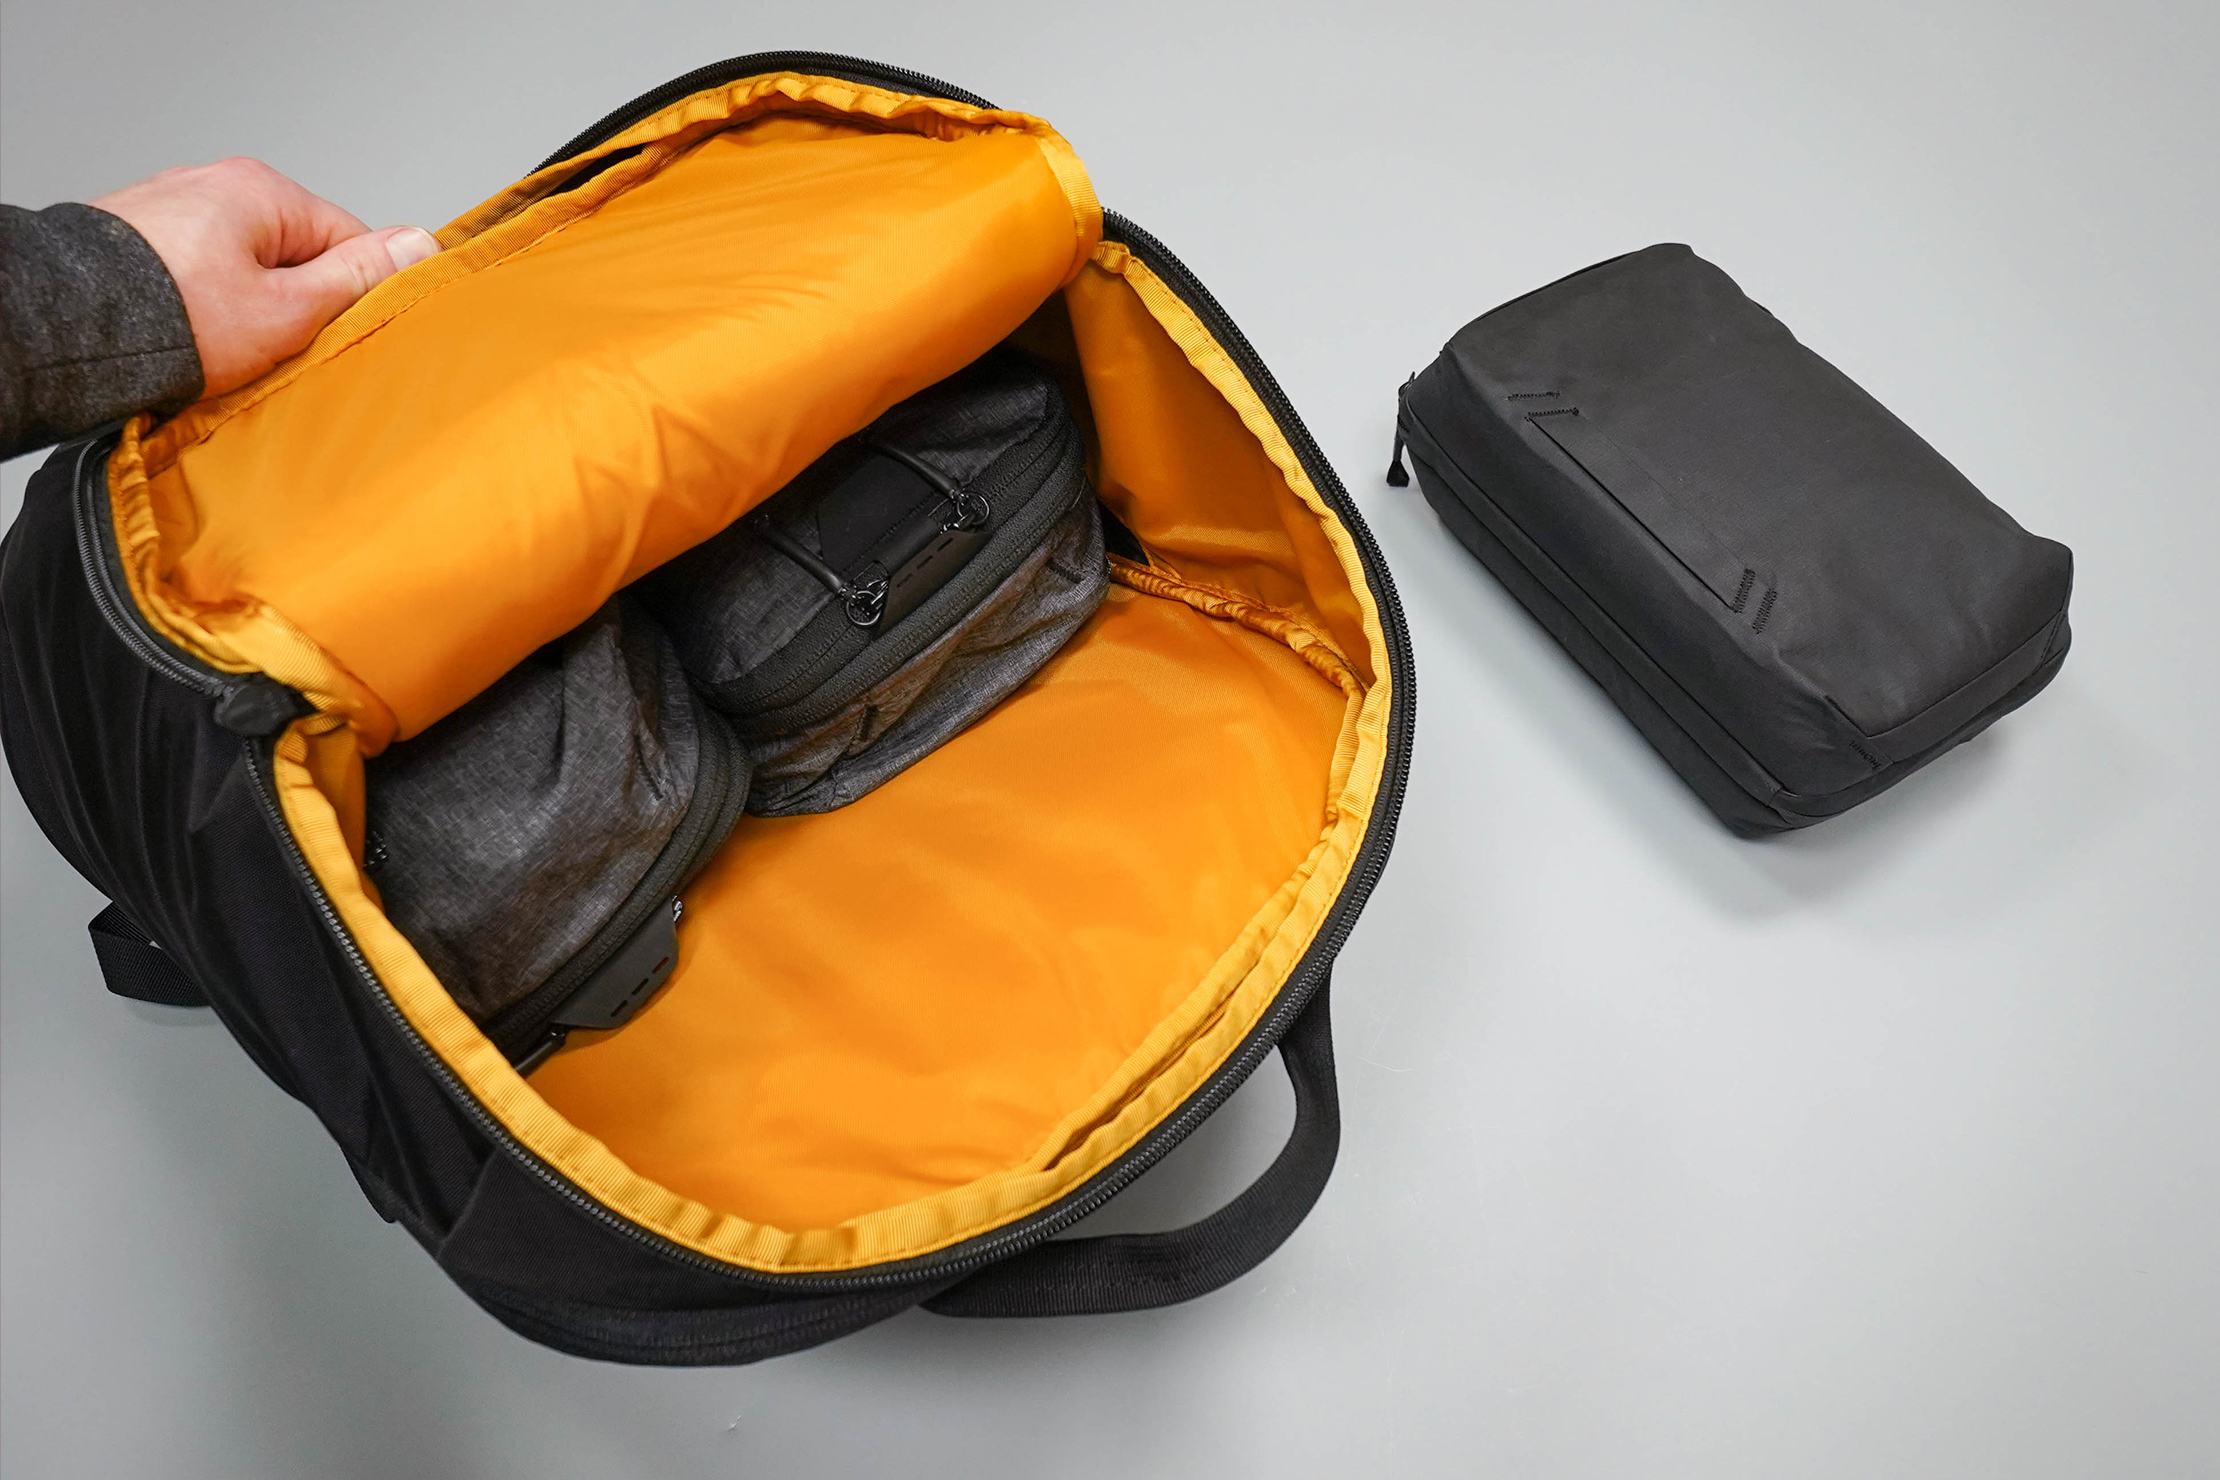 The North Face Kaban Backpack Main Compartment